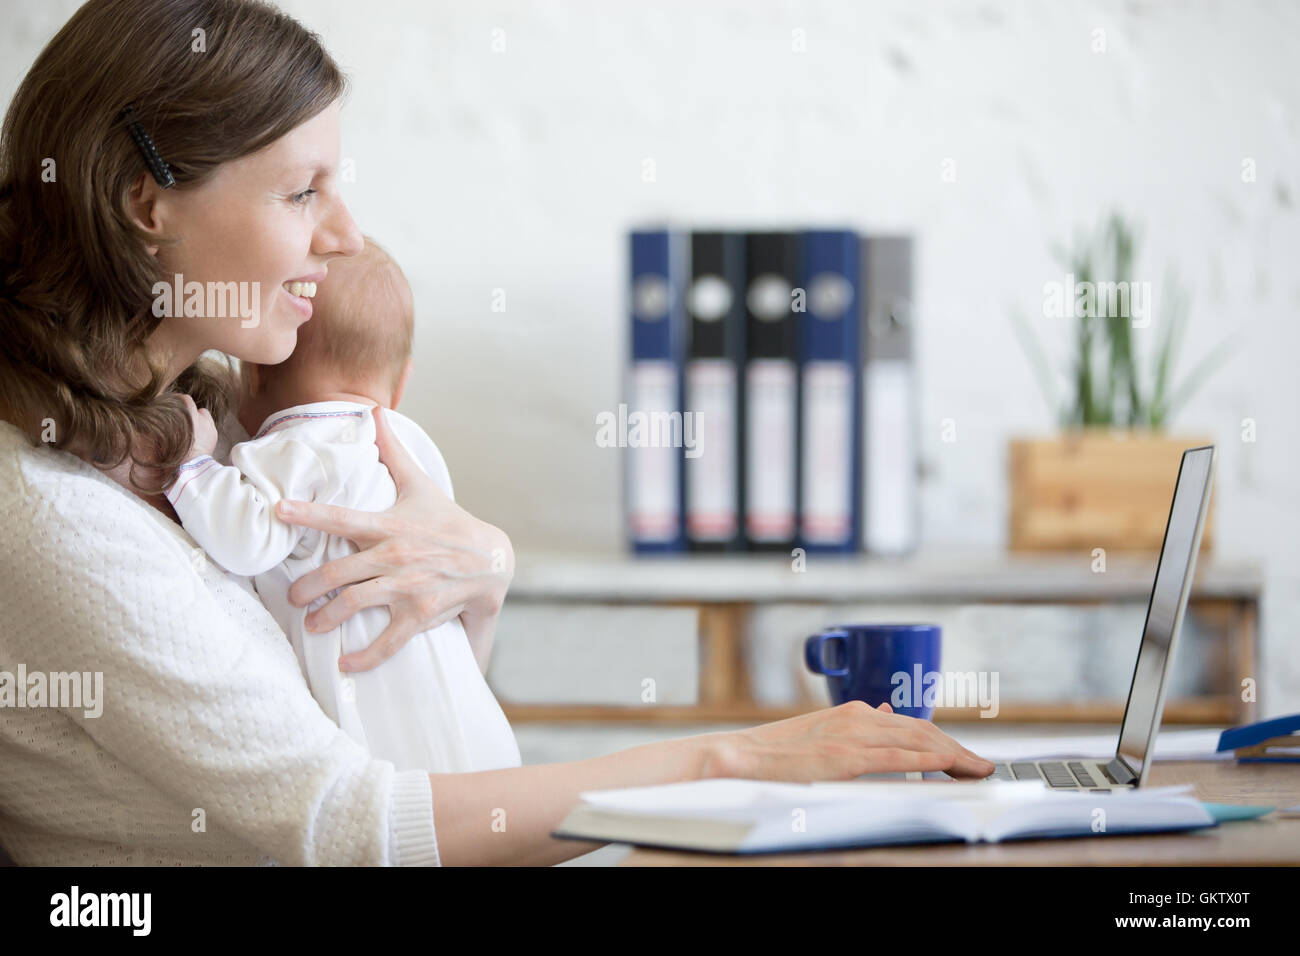 Side view portrait of happy casual young business mom holding her newborn cute babe while working on laptop in home - Stock Image